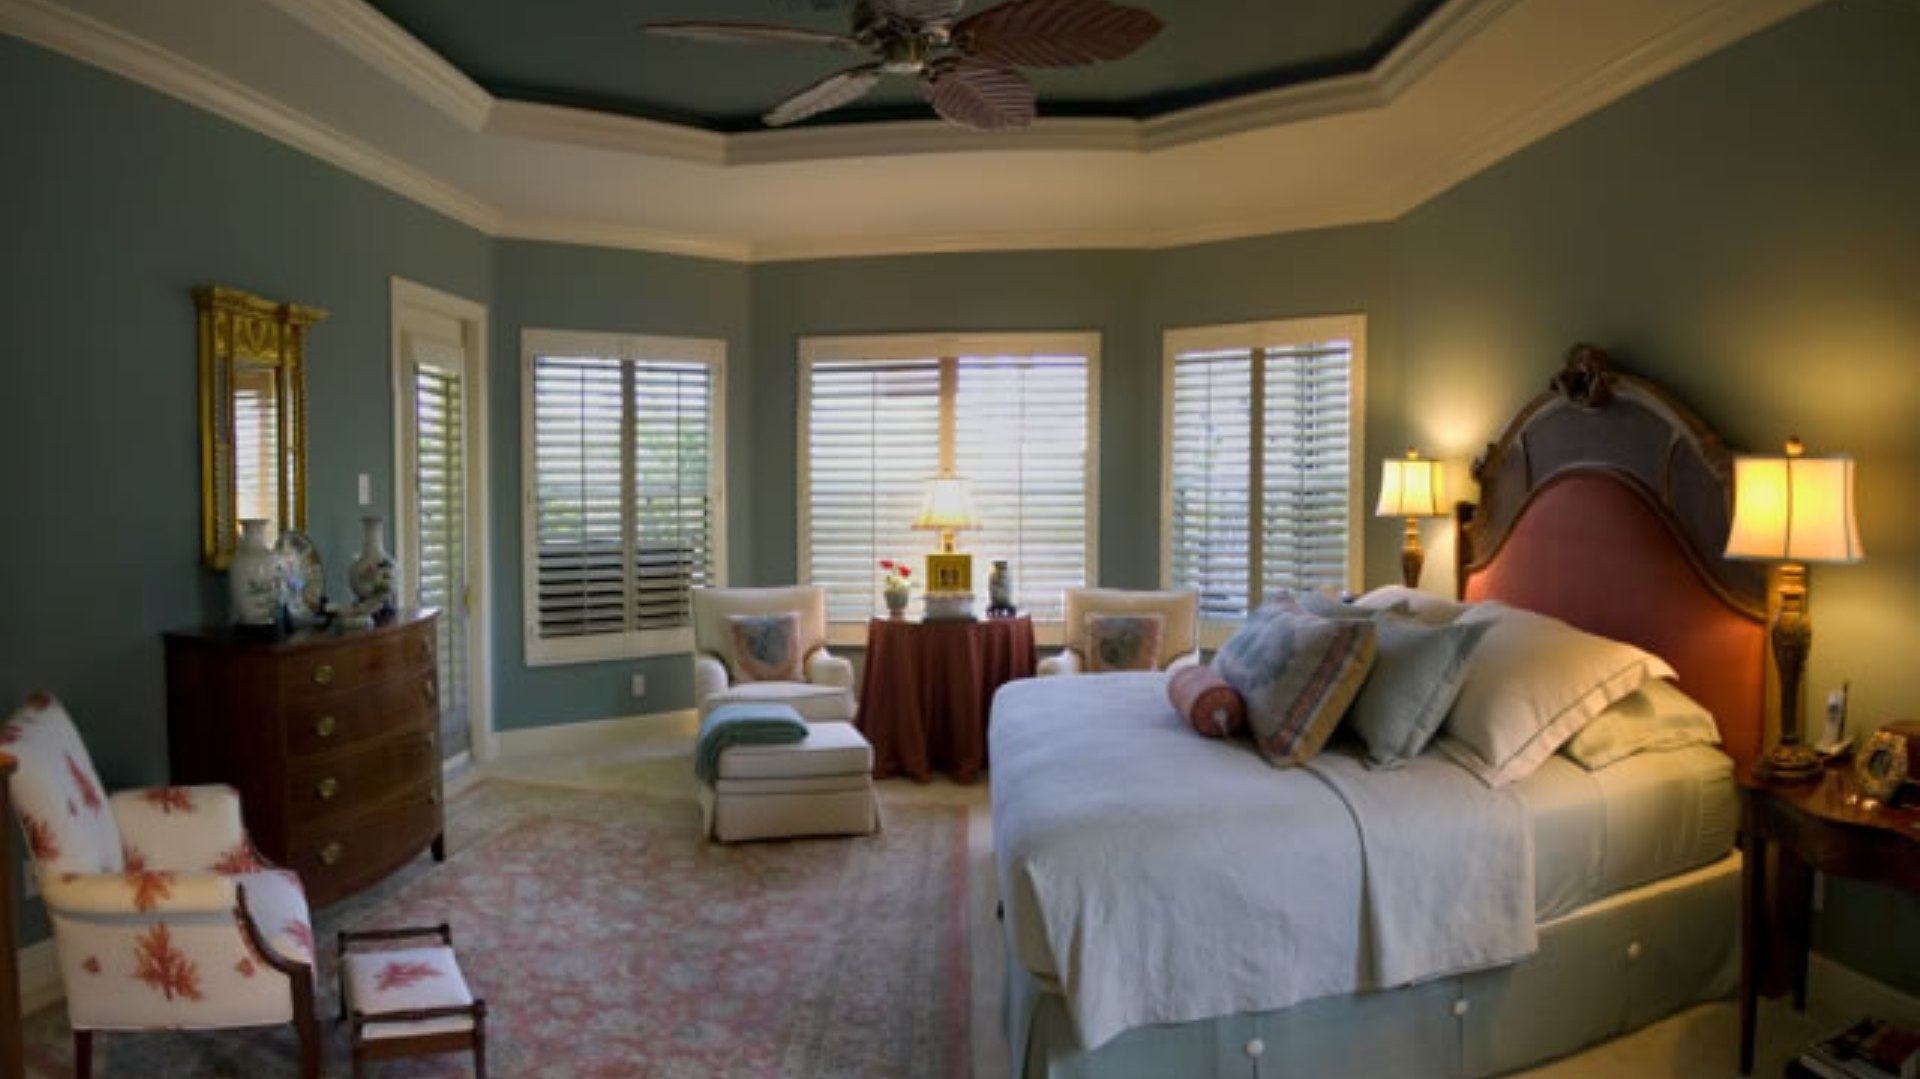 Interior Designers Vero Beach, FL, Boutique Home Decorators